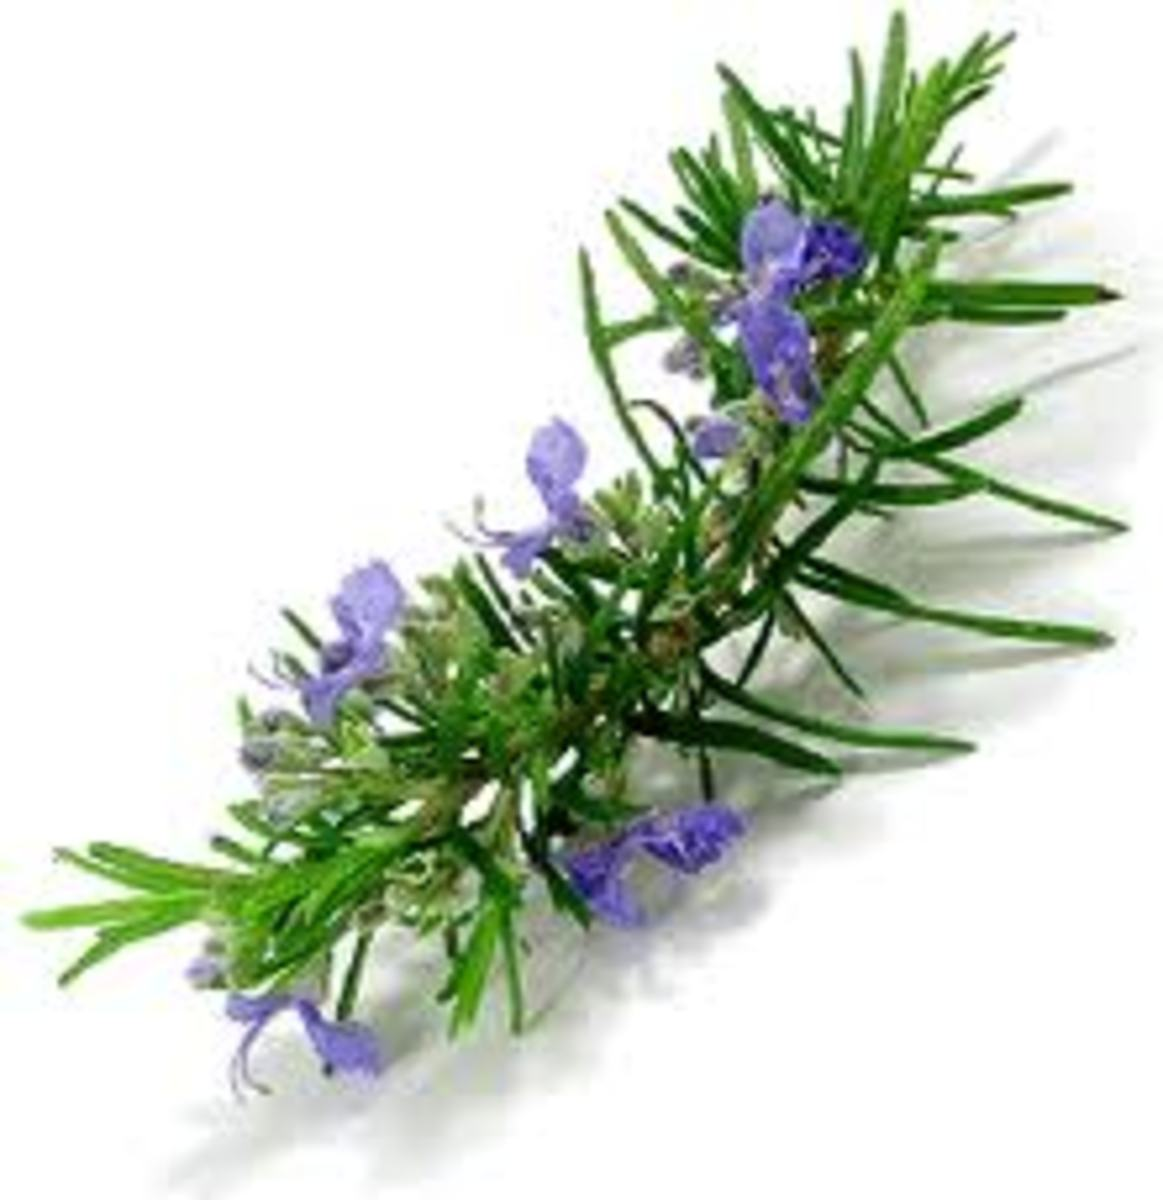 Rosemary has many benefits for hair